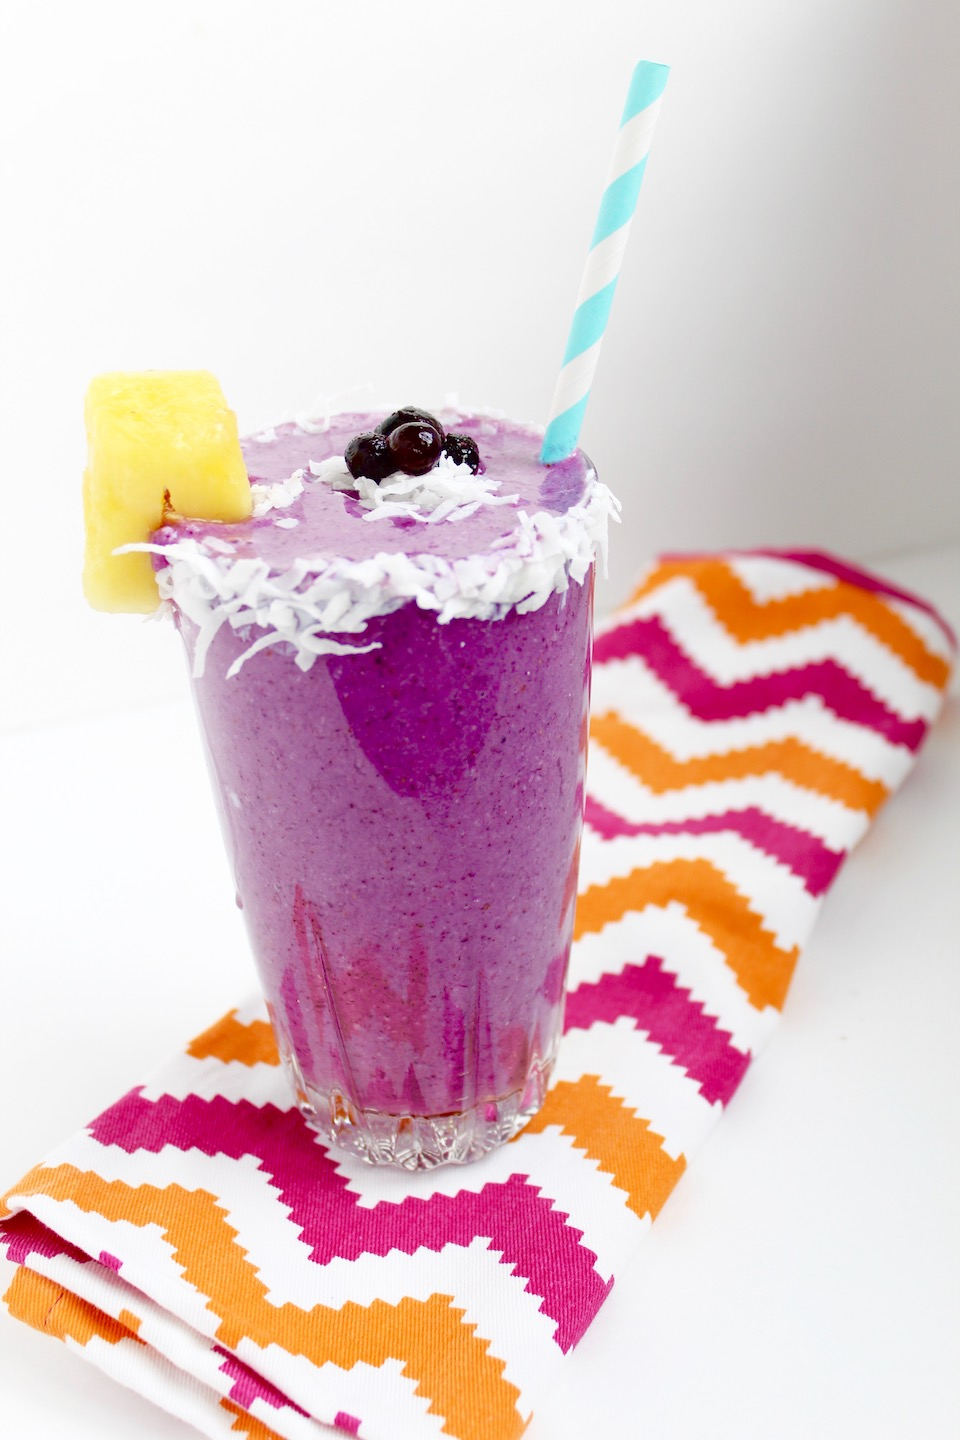 Wild Blueberry Pina Colada Smoothie Recipe -- A healthy start to your day with a tropical twist! Made with wild blueberries, frozen pineapple, and coconut water, it's a taste of the tropics in a glass! | @sinfulnutrition @wildbberries #AD #WildYourSmoothie